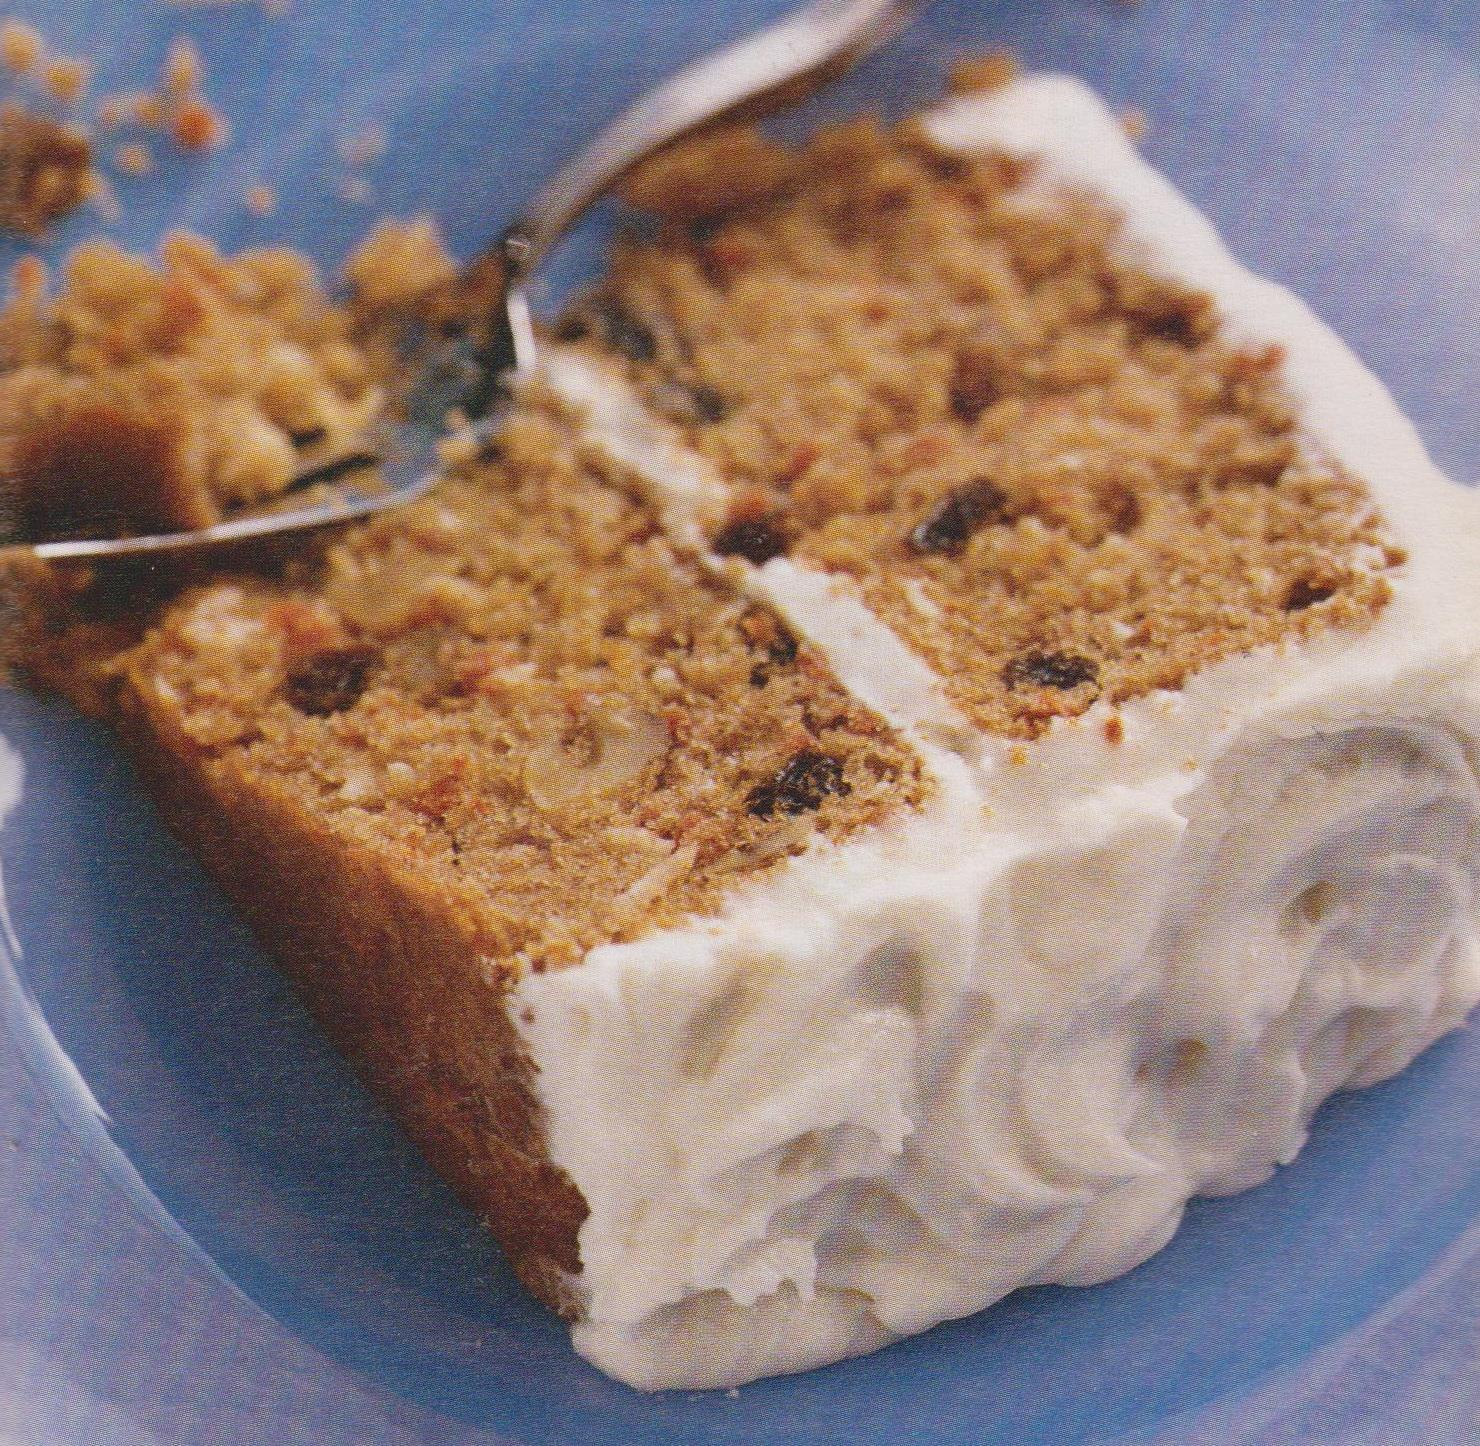 Recommend Cake Recipes With A Long Shelf Life Uk